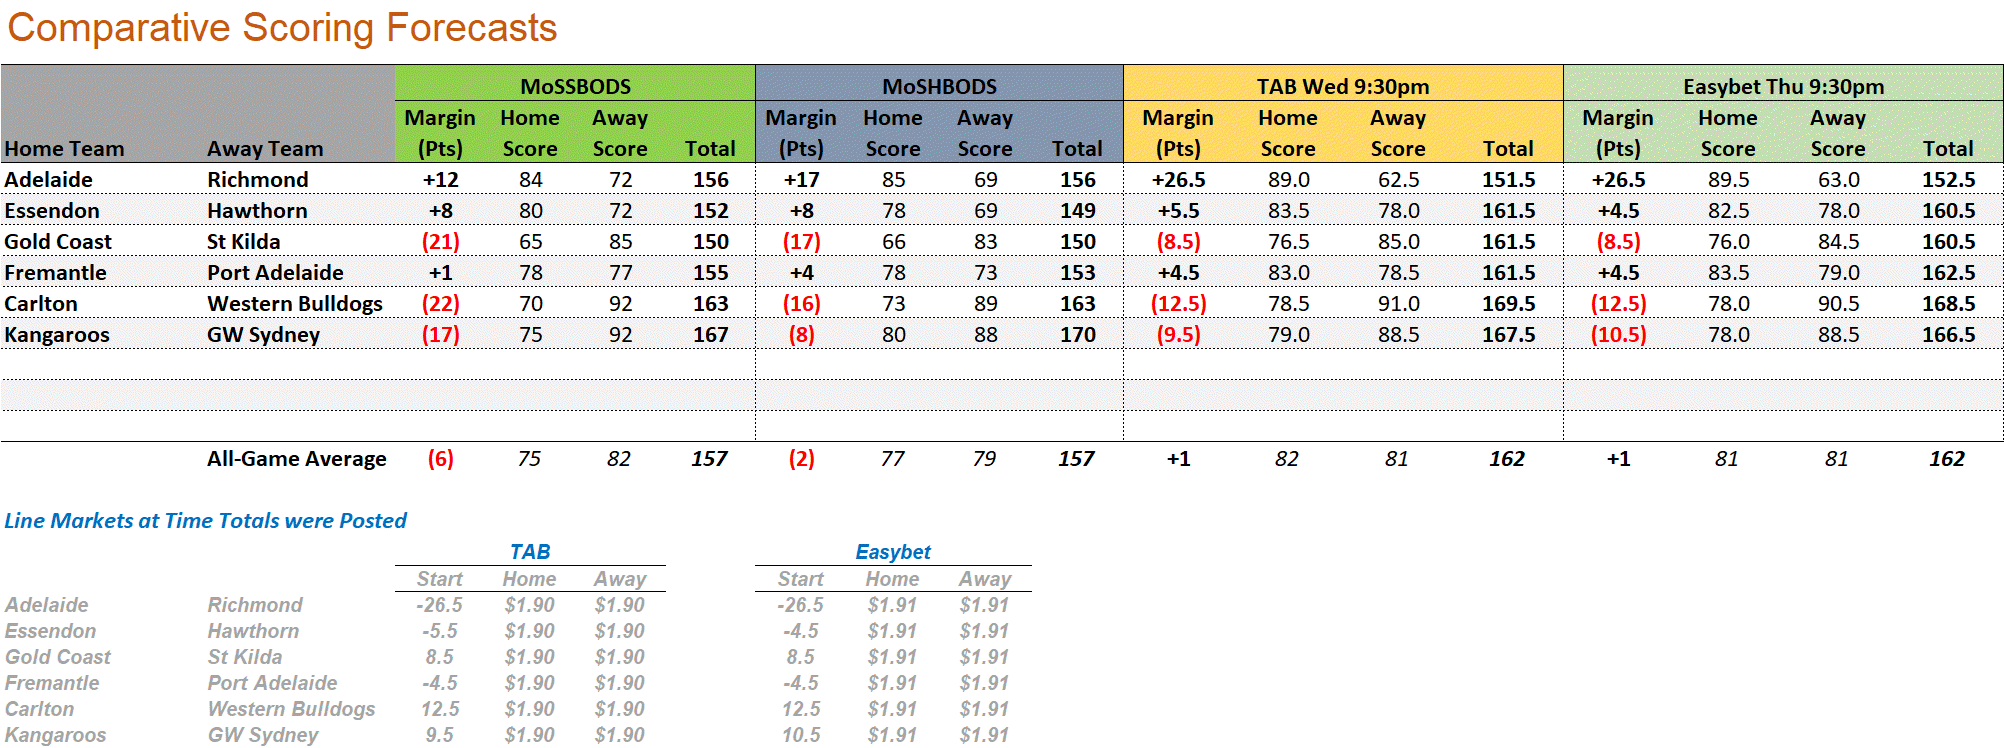 R13 - Score Forecasts.png